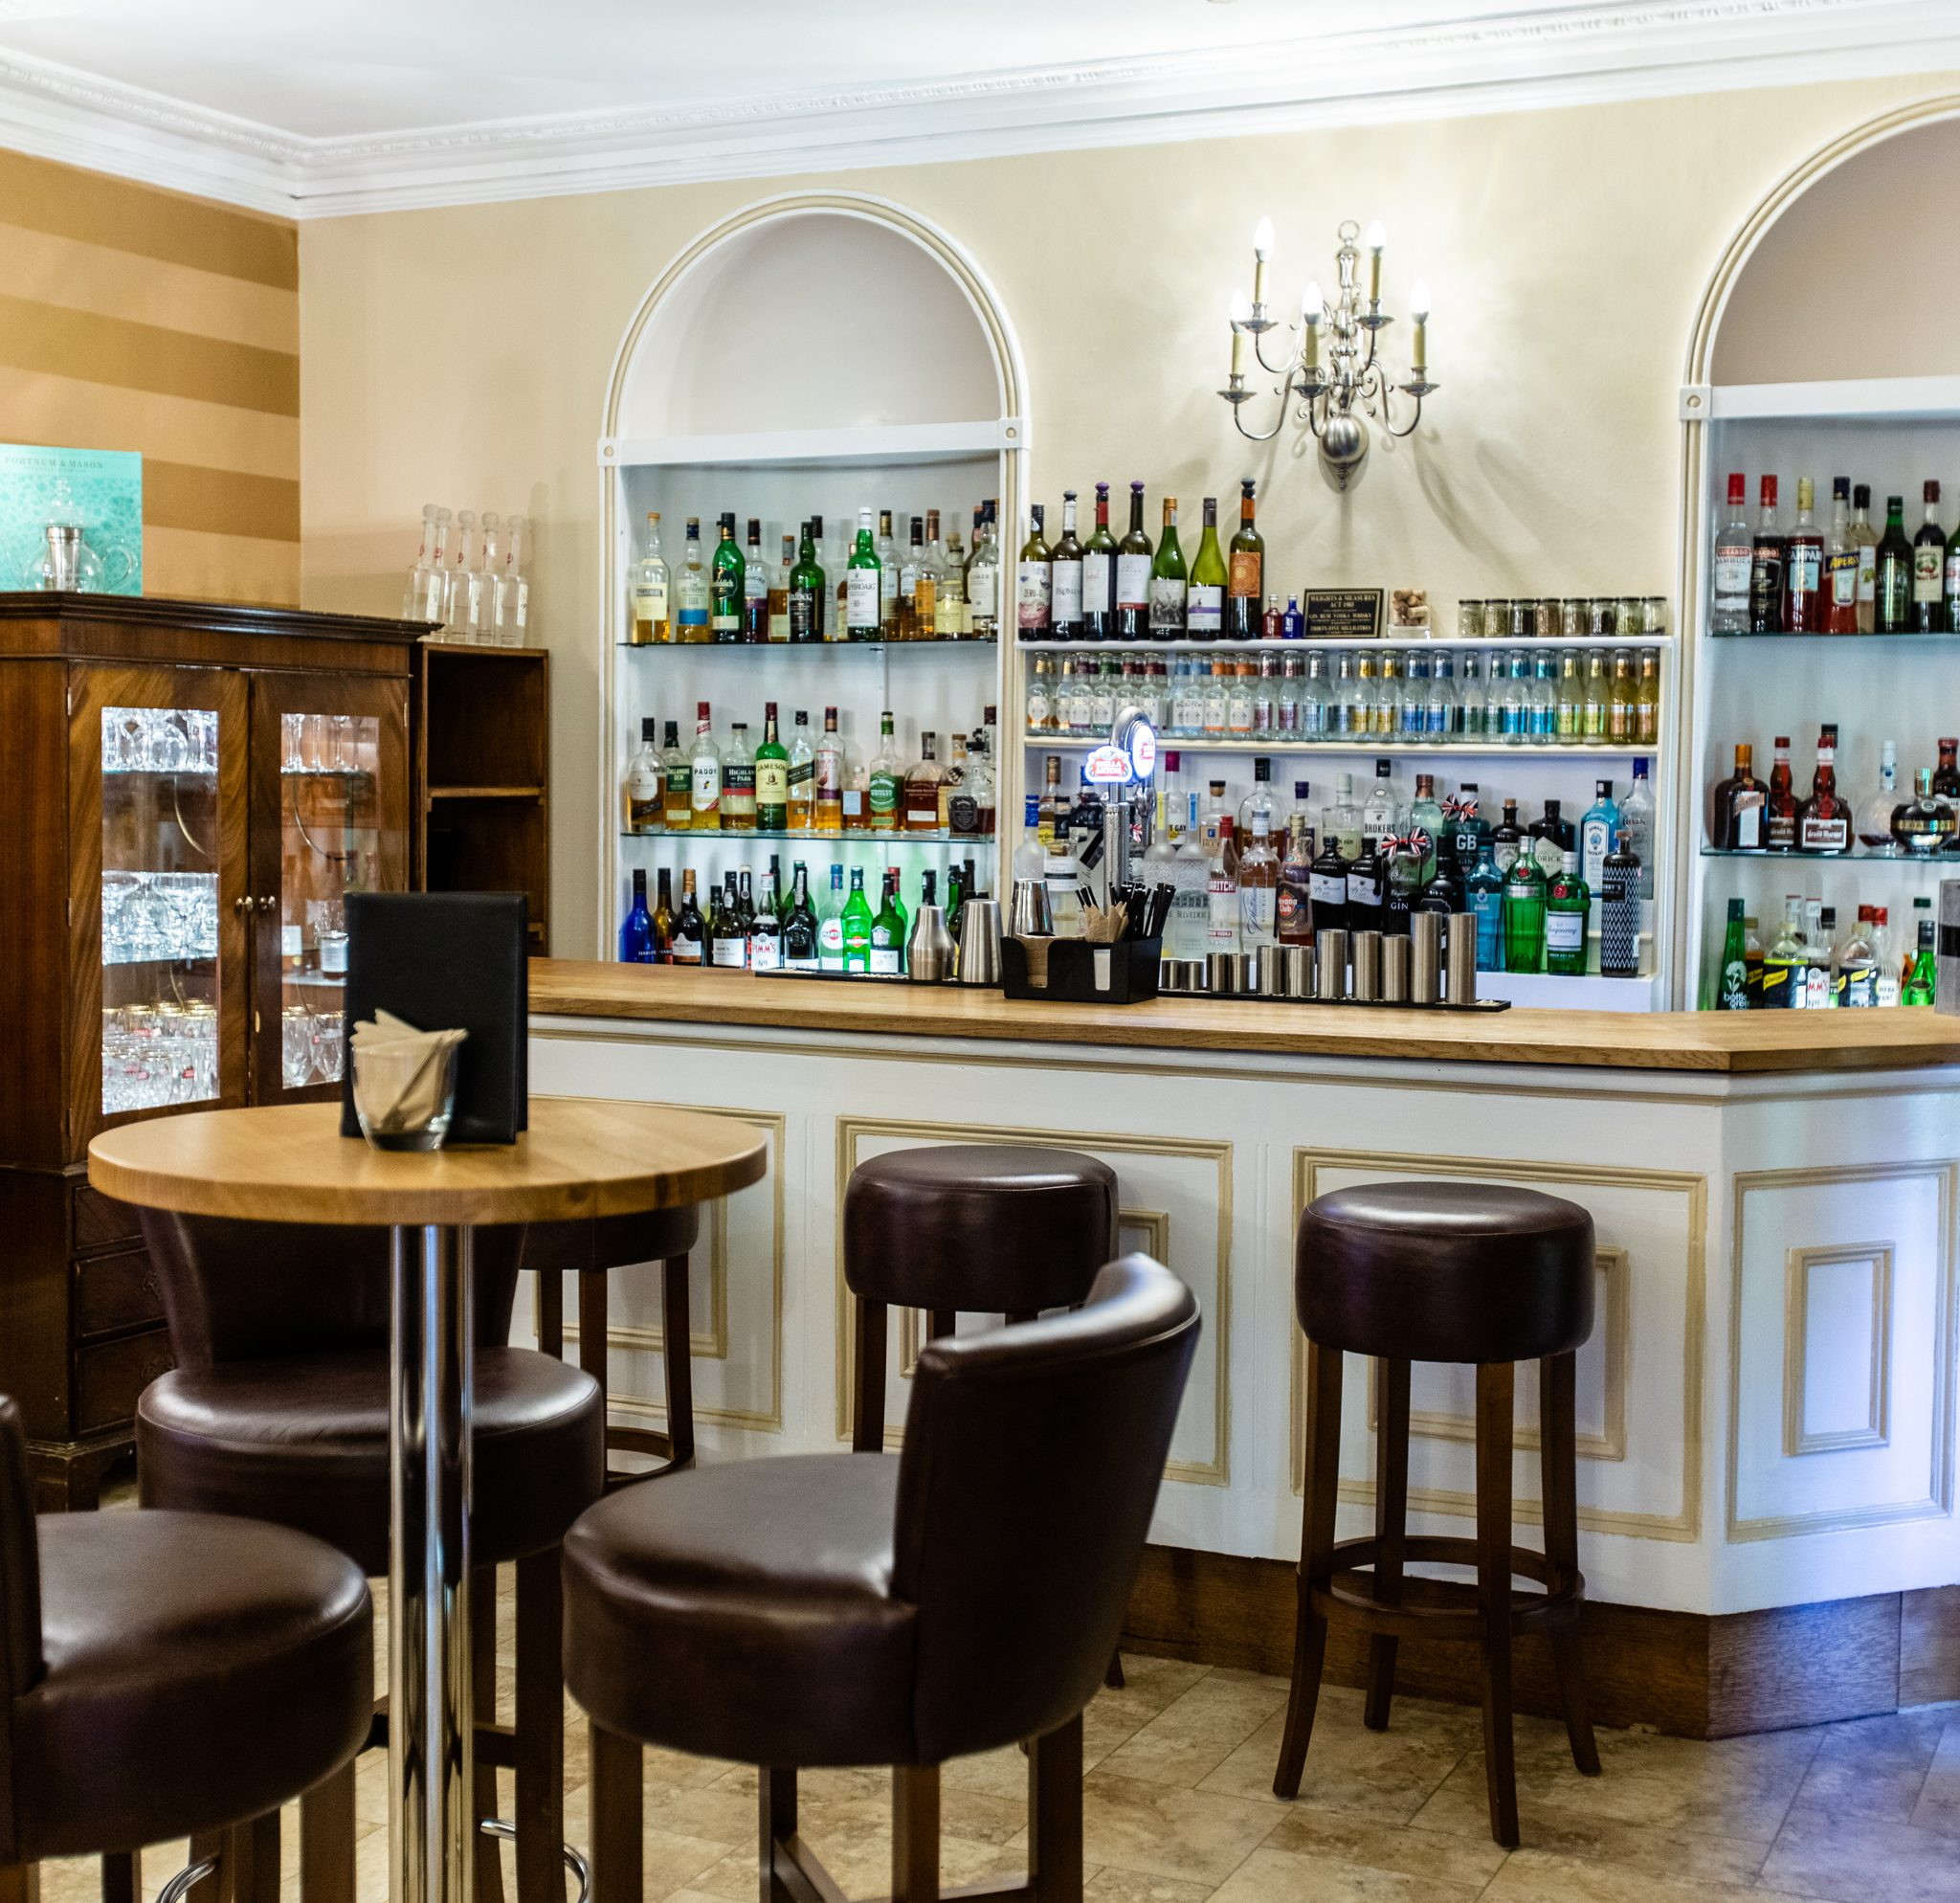 Choose to visit the Greenway Hotel and Spa in Cheltenham as part of the Eden Hotel Collection.